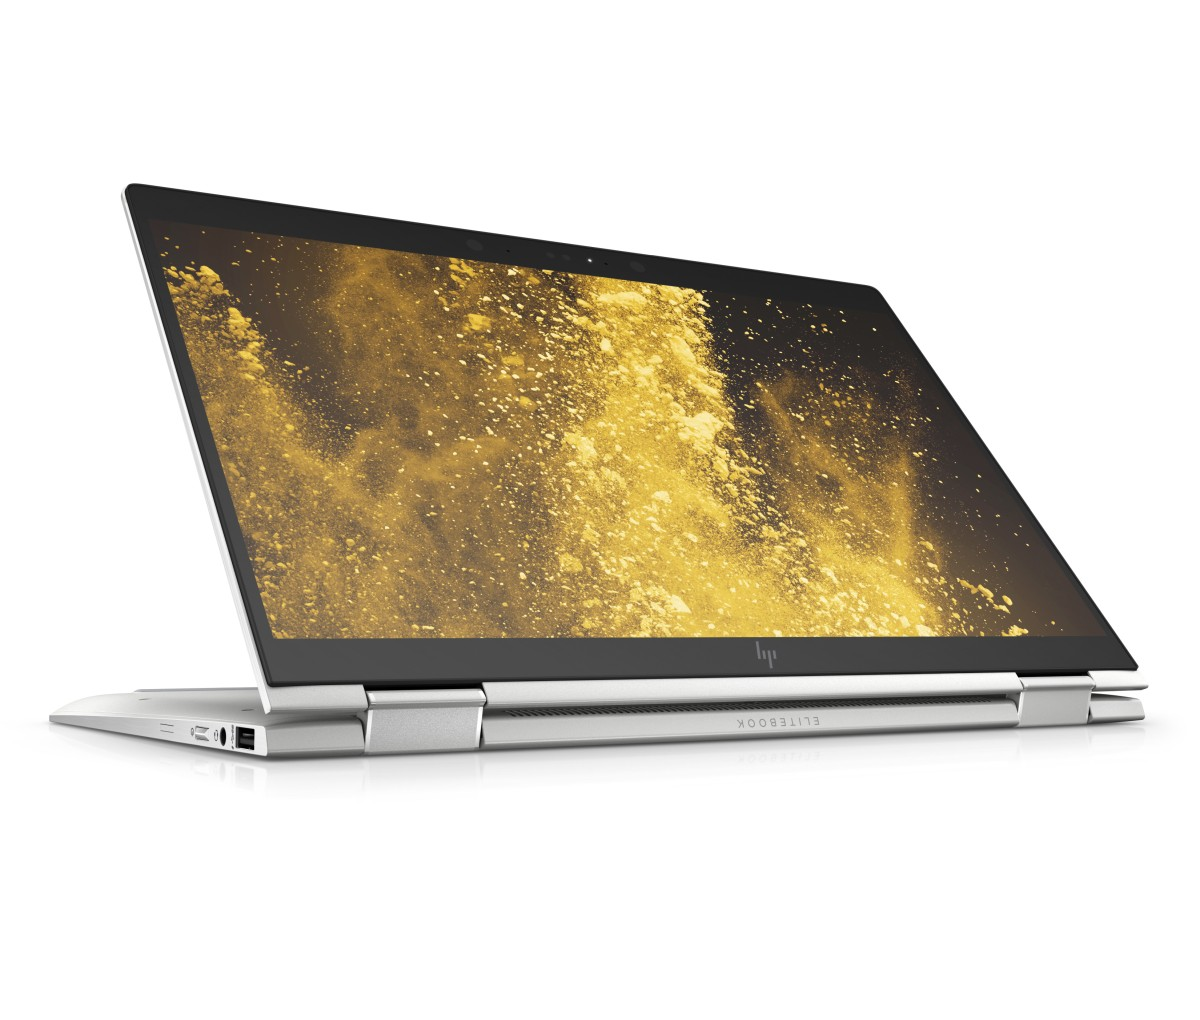 "7YL50EA#BCM HP EliteBook x360 1030 G4 13,3"" FHD privacy i5-8265U/16GB/512M.2/WF/BT/LTE/W10P+pen"